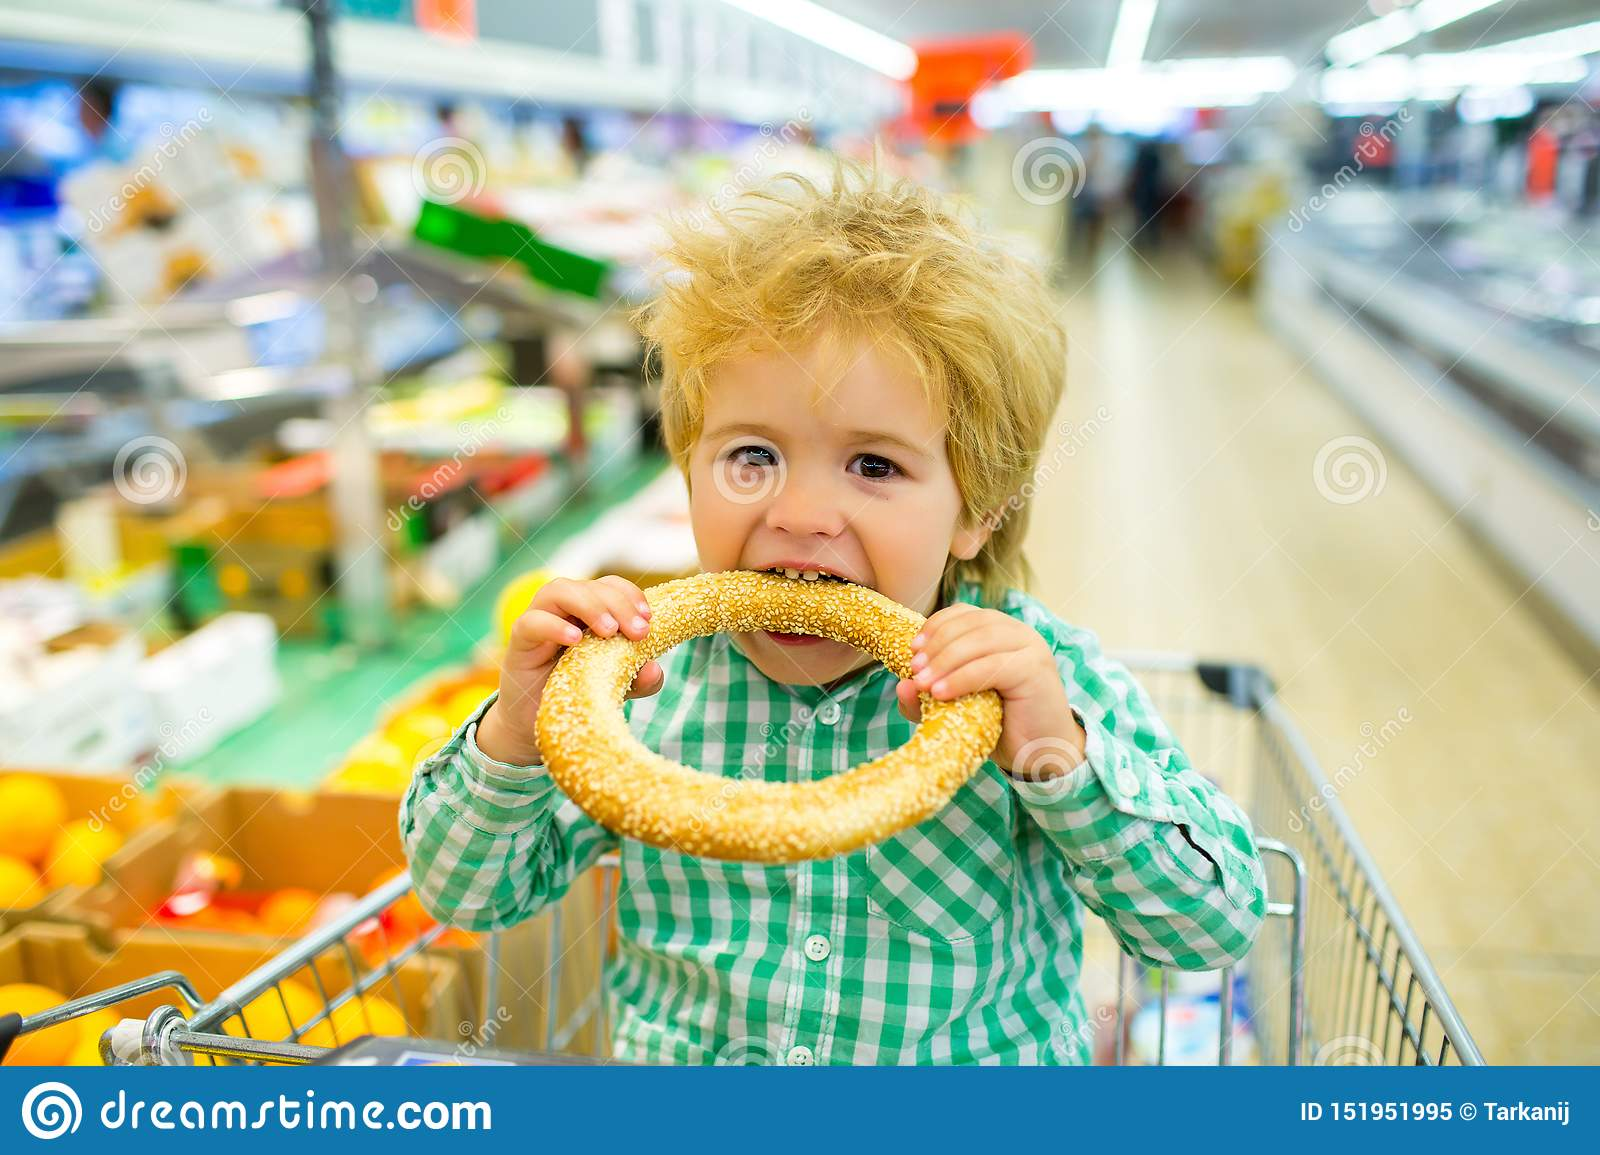 Tasty bun. Boy bites bagel with sesame in the supermarket. Bakery products. Shopping Shopping for food. Child food